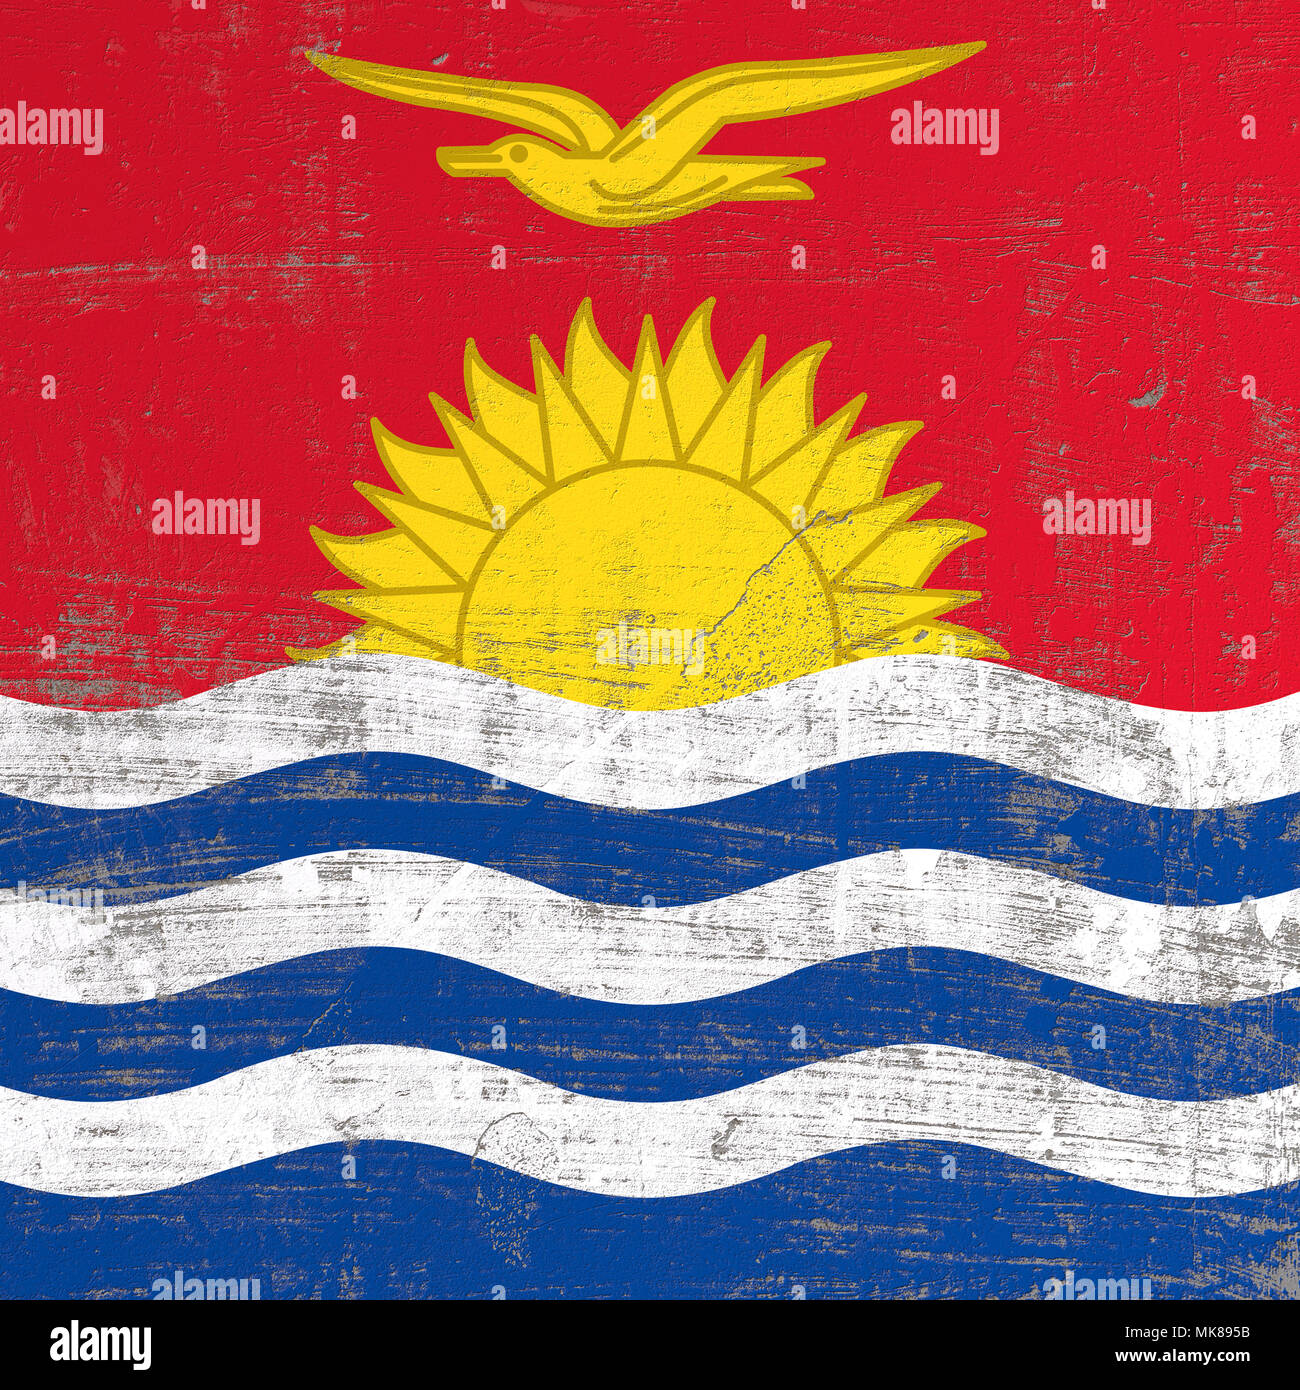 3d rendering of Kiribati flag in a scratched surface - Stock Image